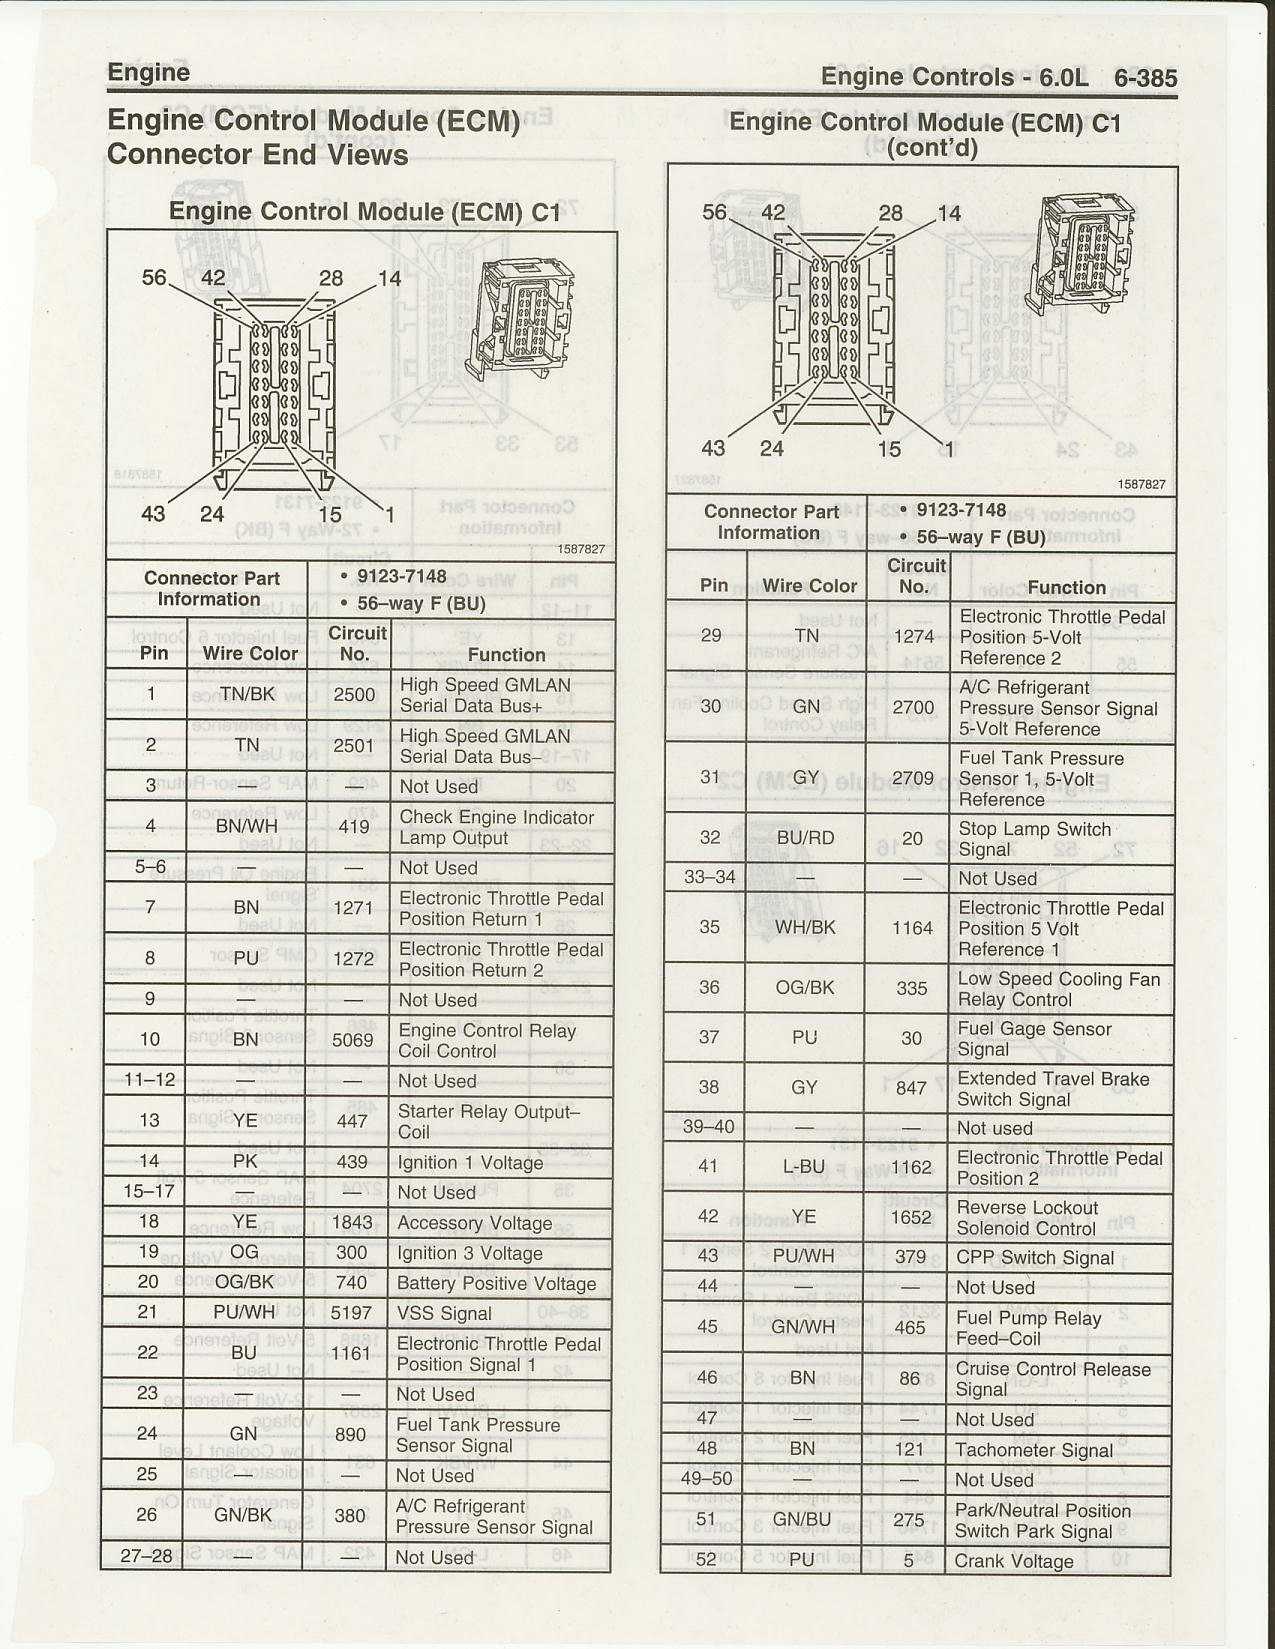 enginecontrols07 e67 wiring diagram smart car diagrams \u2022 wiring diagrams j squared co gm ls3 crate engine wiring diagram at bayanpartner.co